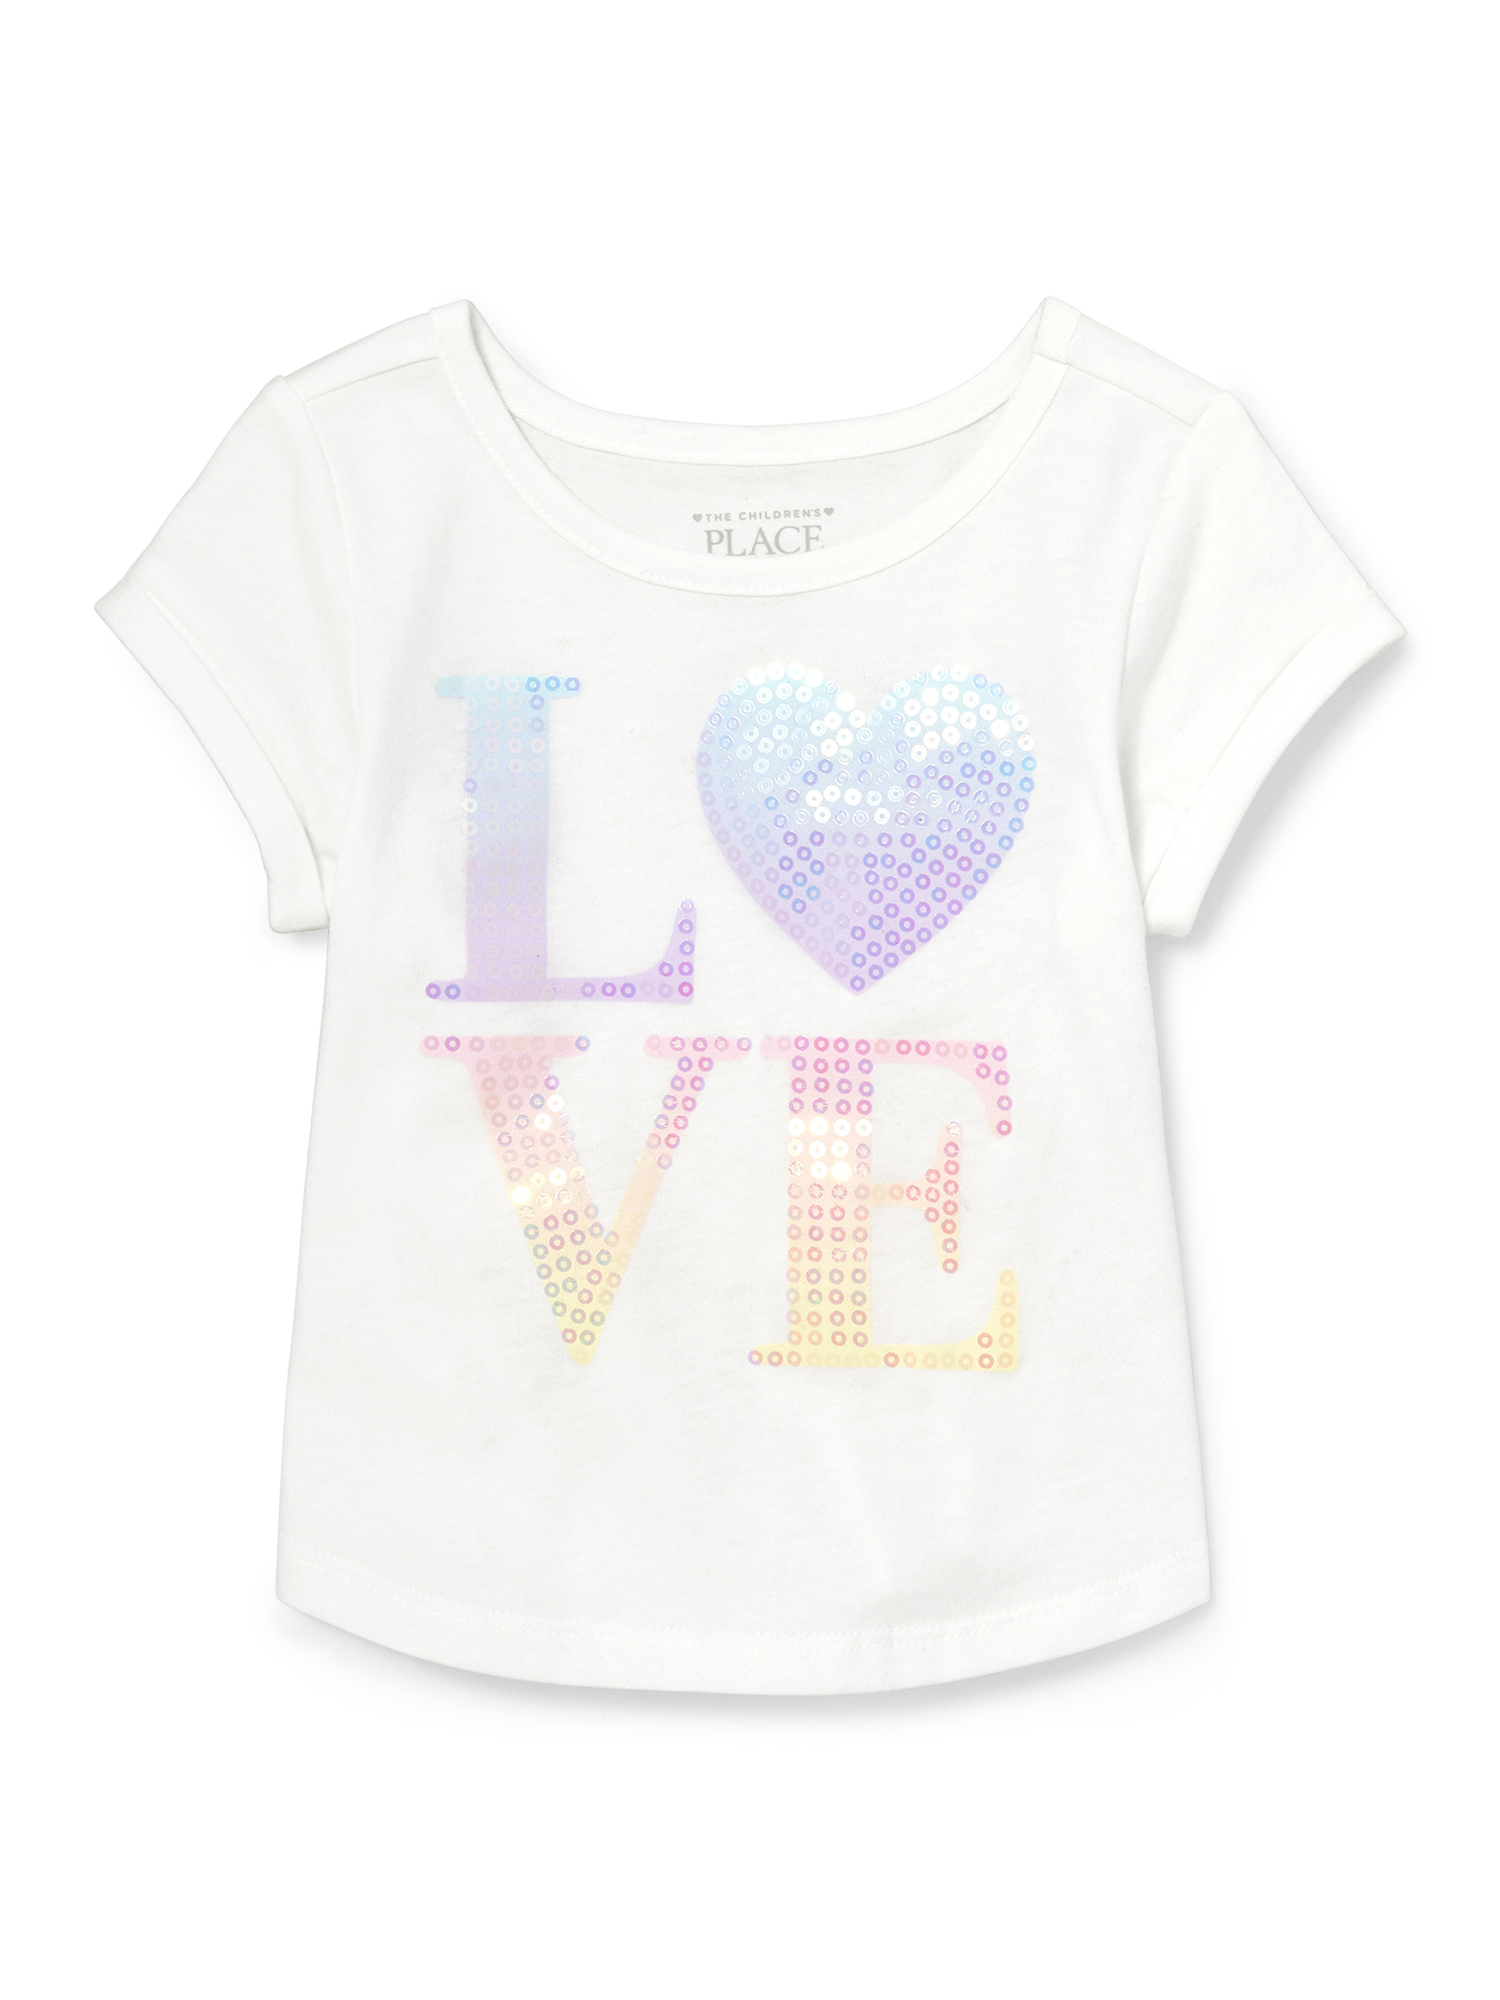 Short Sleeve Rolled Sleeve Graphic Top (Baby Girls & Toddler Girls)